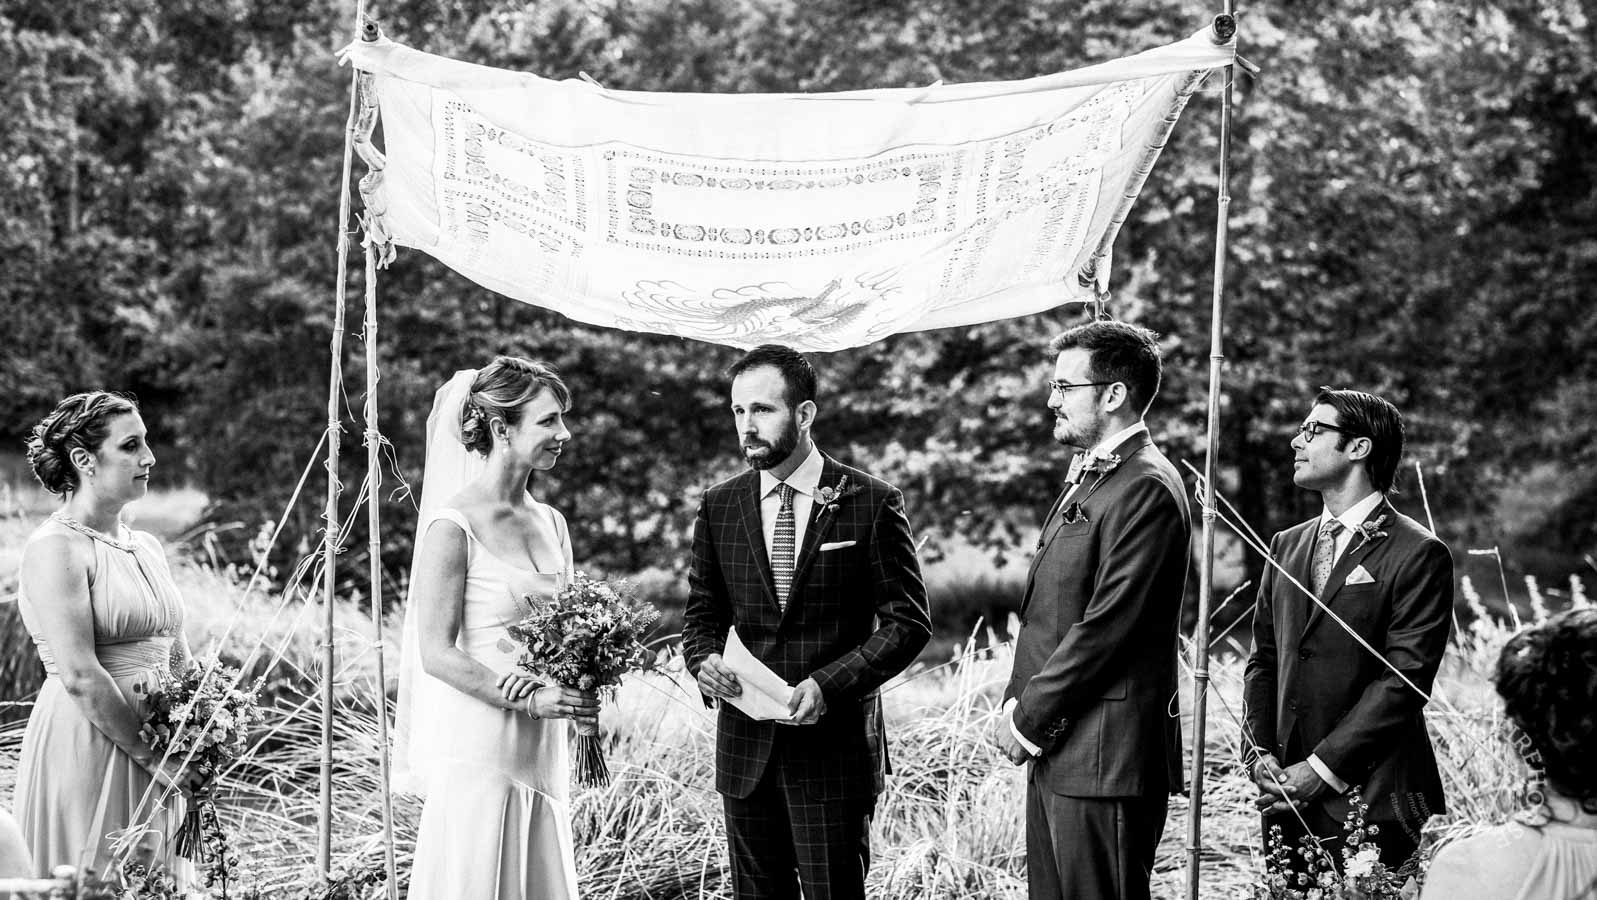 Lot-et-Garonne-Wedding-Photography-217